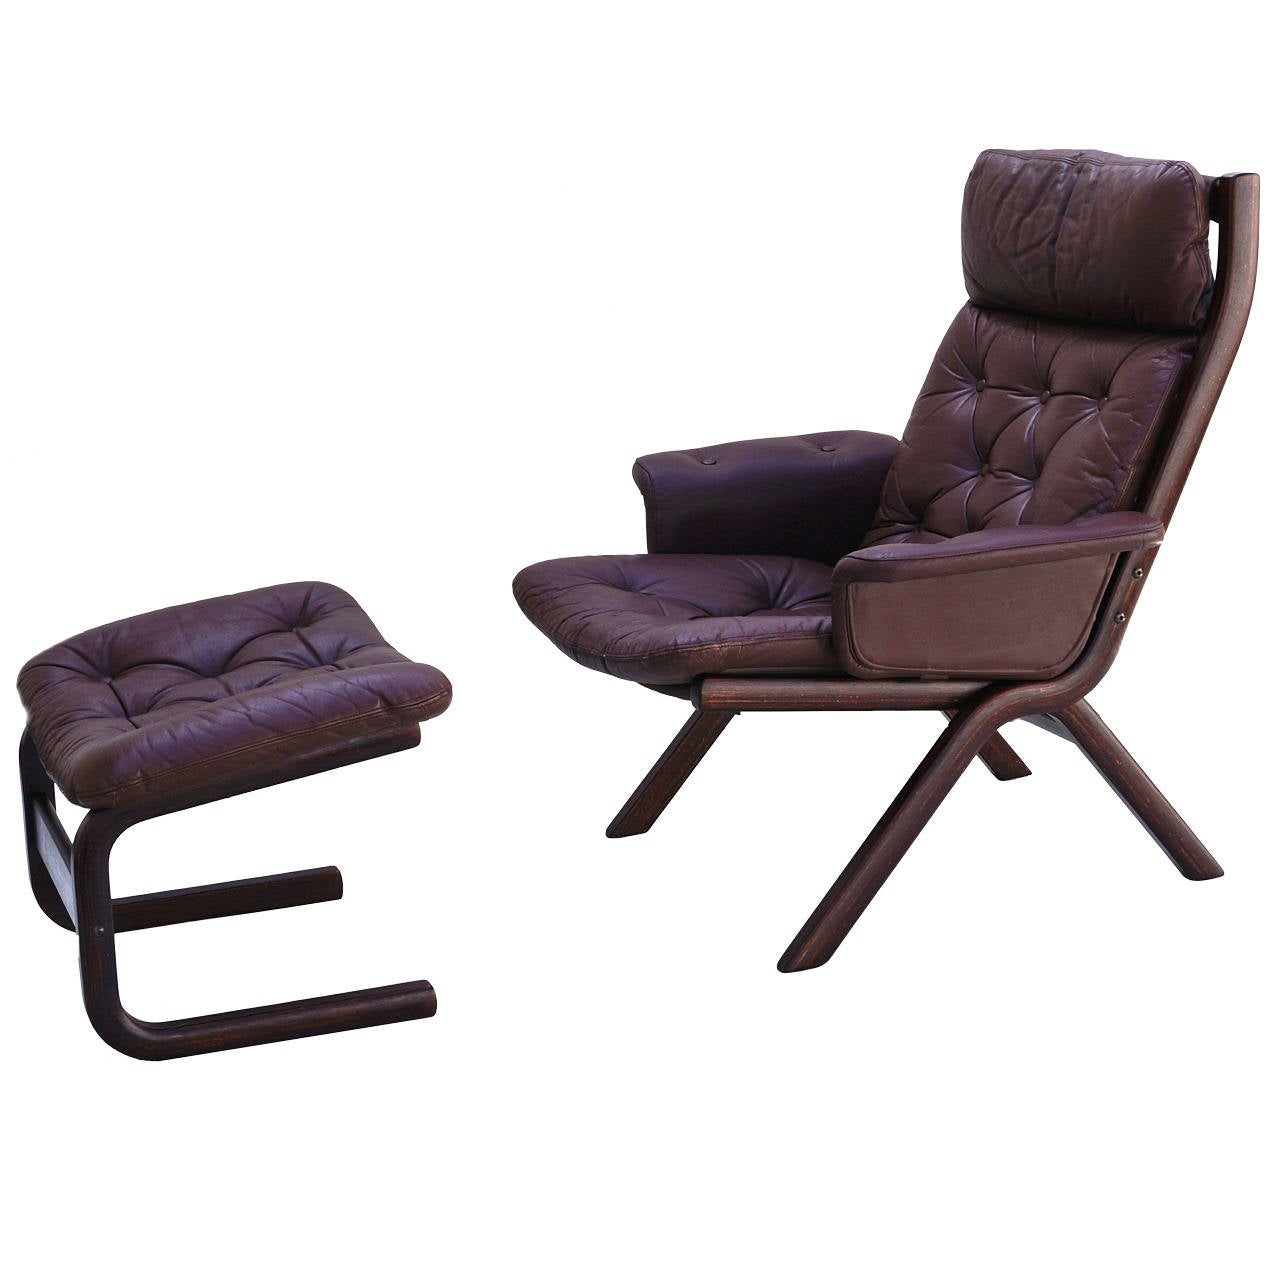 leather chair modern covers cork danish sculptural sling lounge and